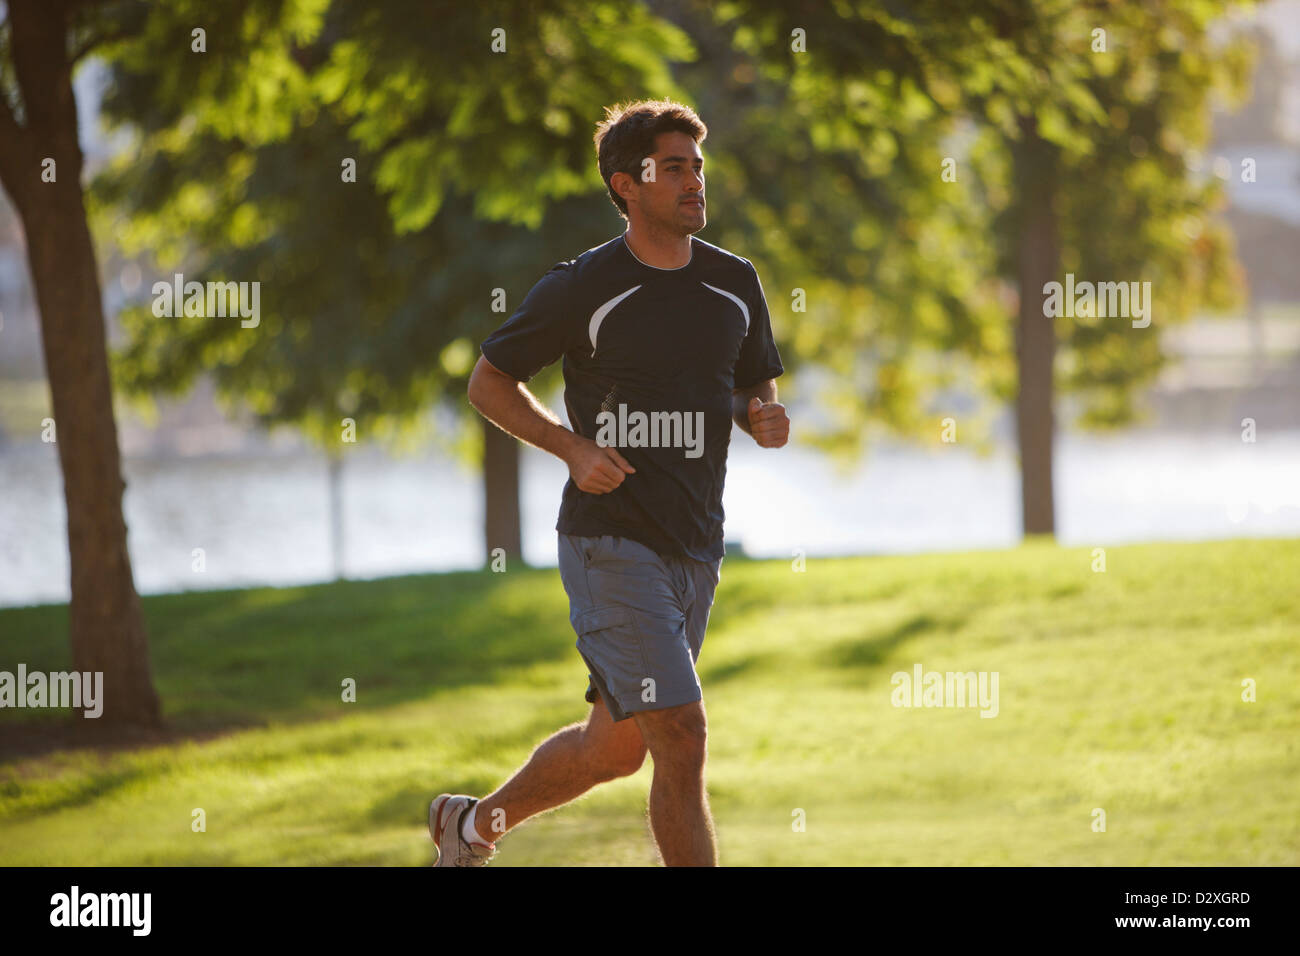 Man jogging in park Photo Stock